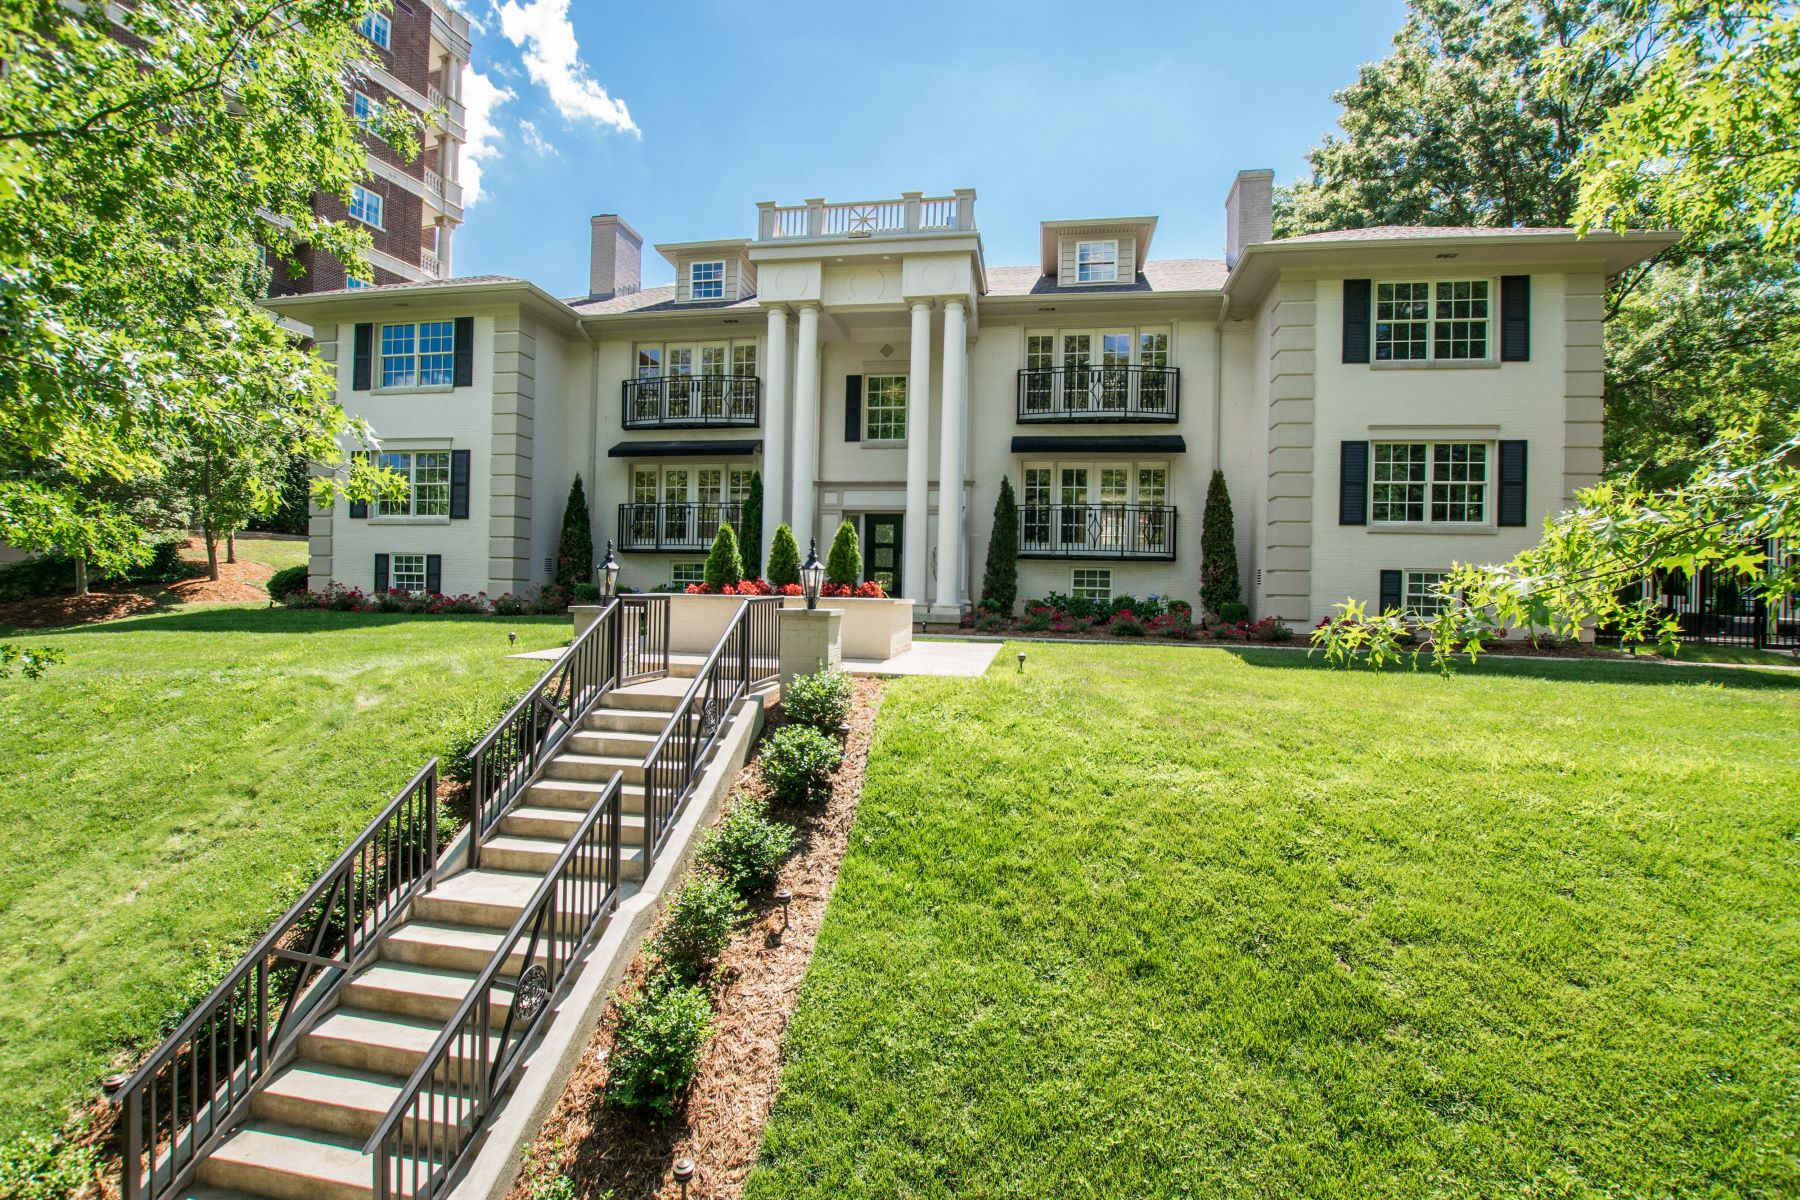 Condominium for Sale at 1600 Cherokee Road Unit 3 Louisville, Kentucky 40205 United States